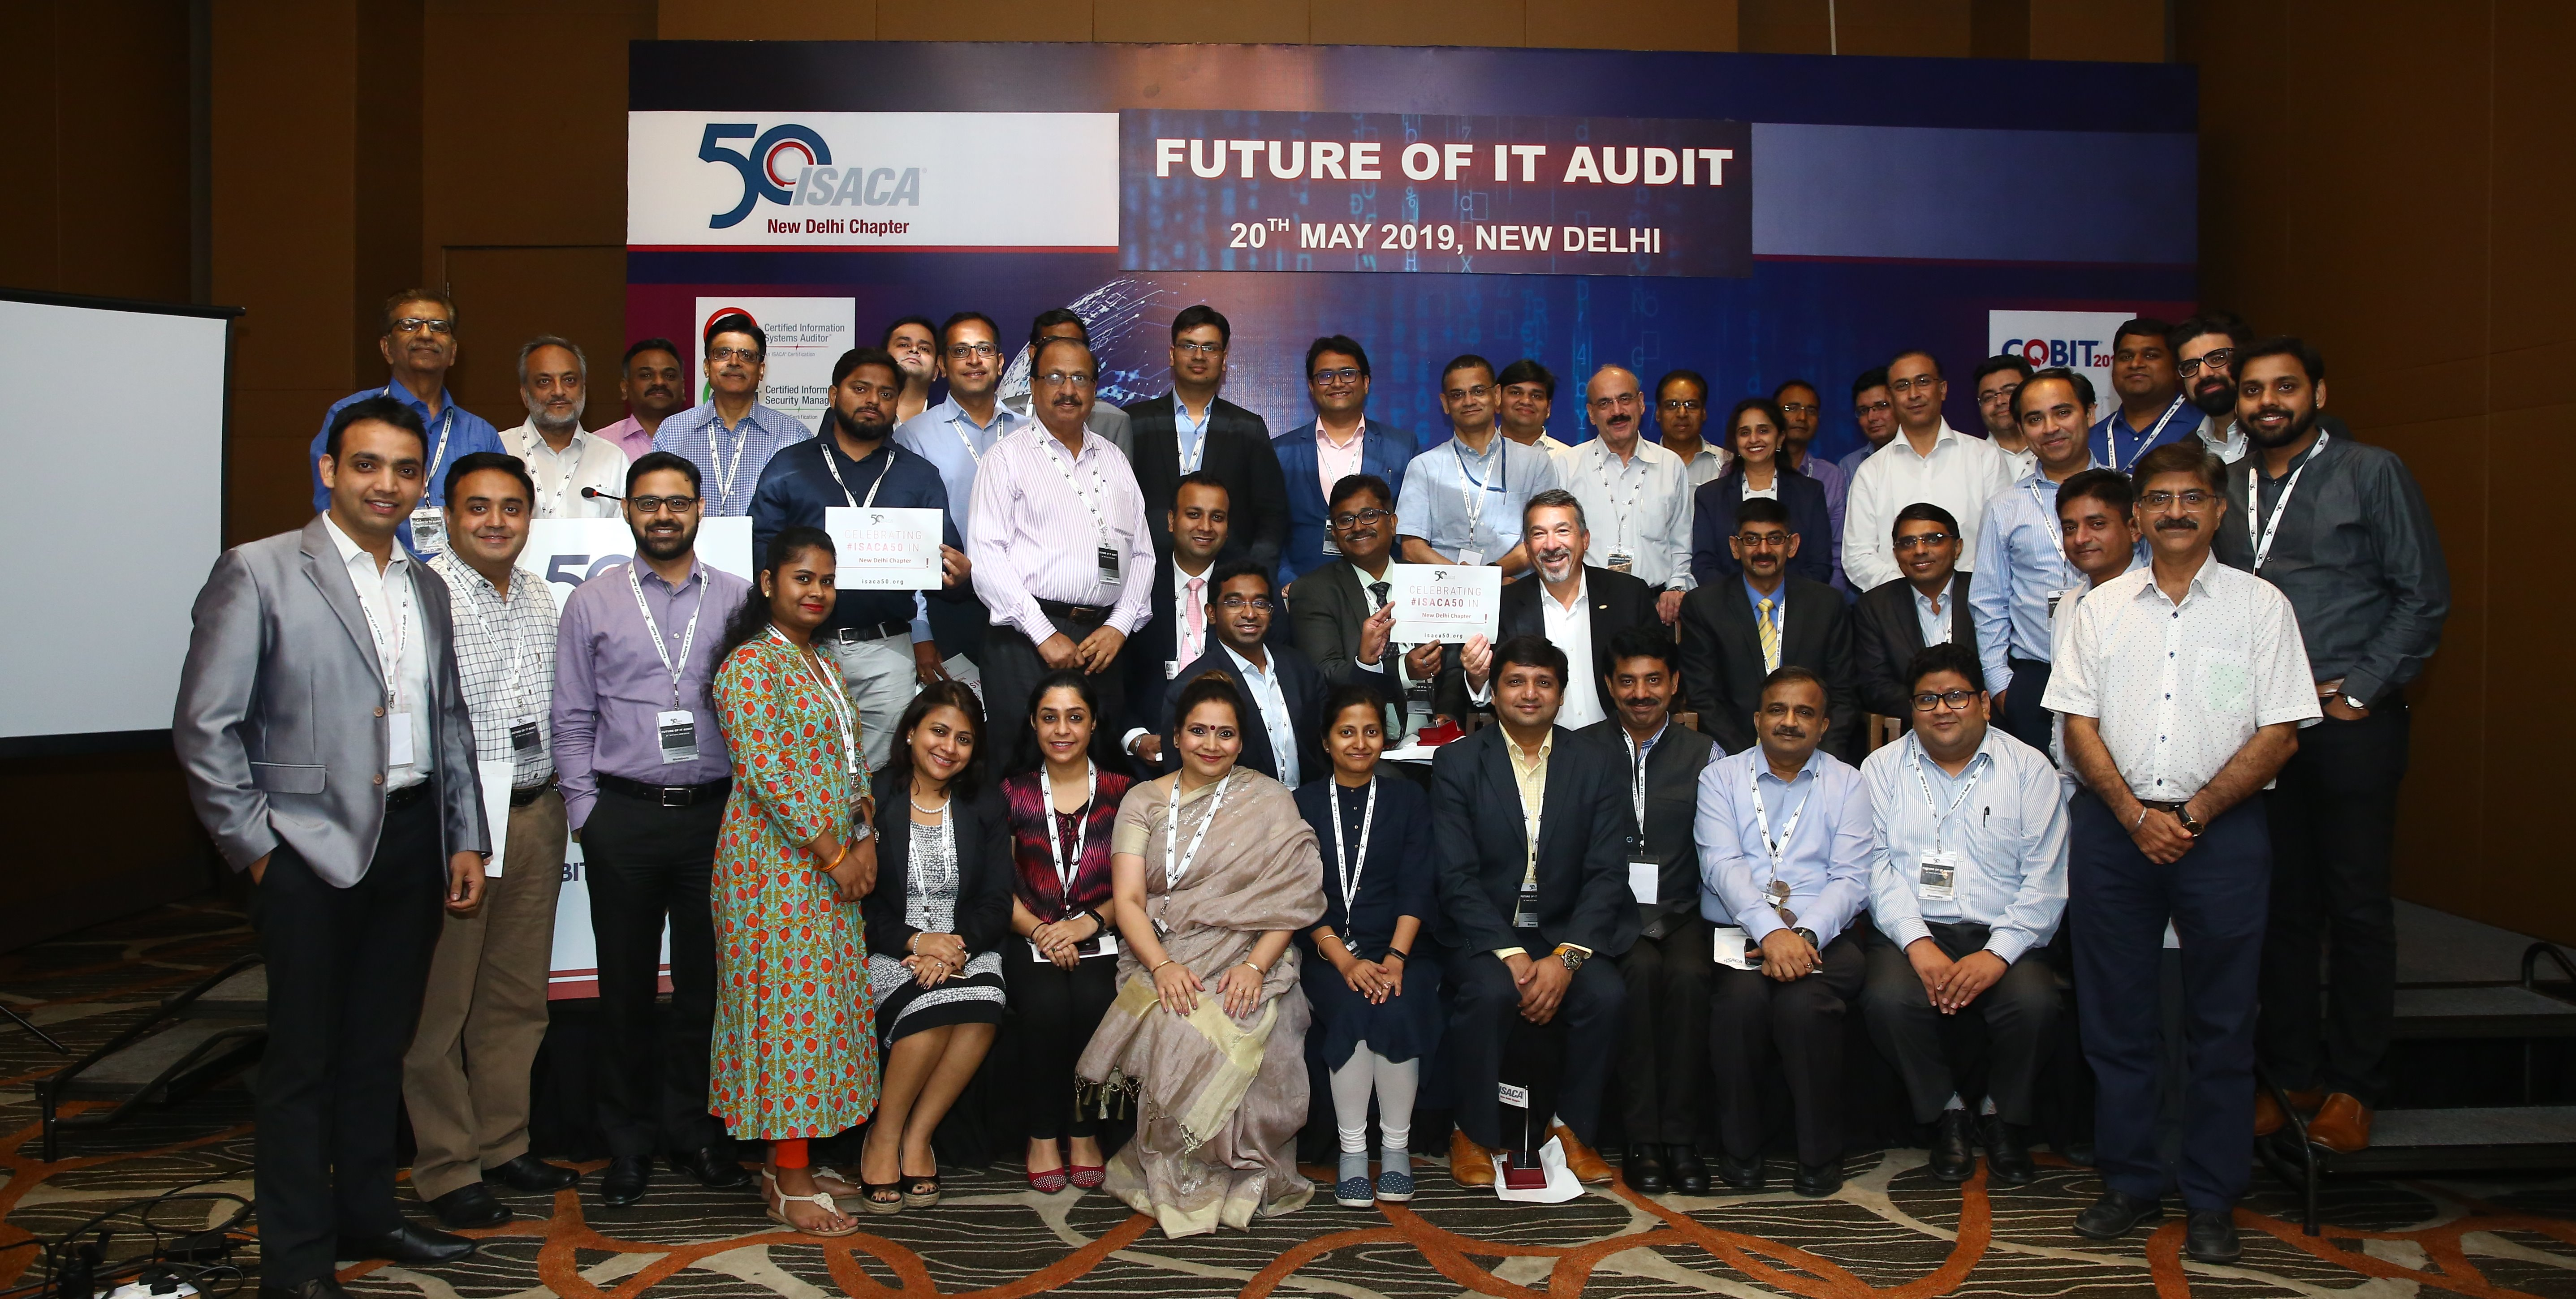 Future of IT Audit